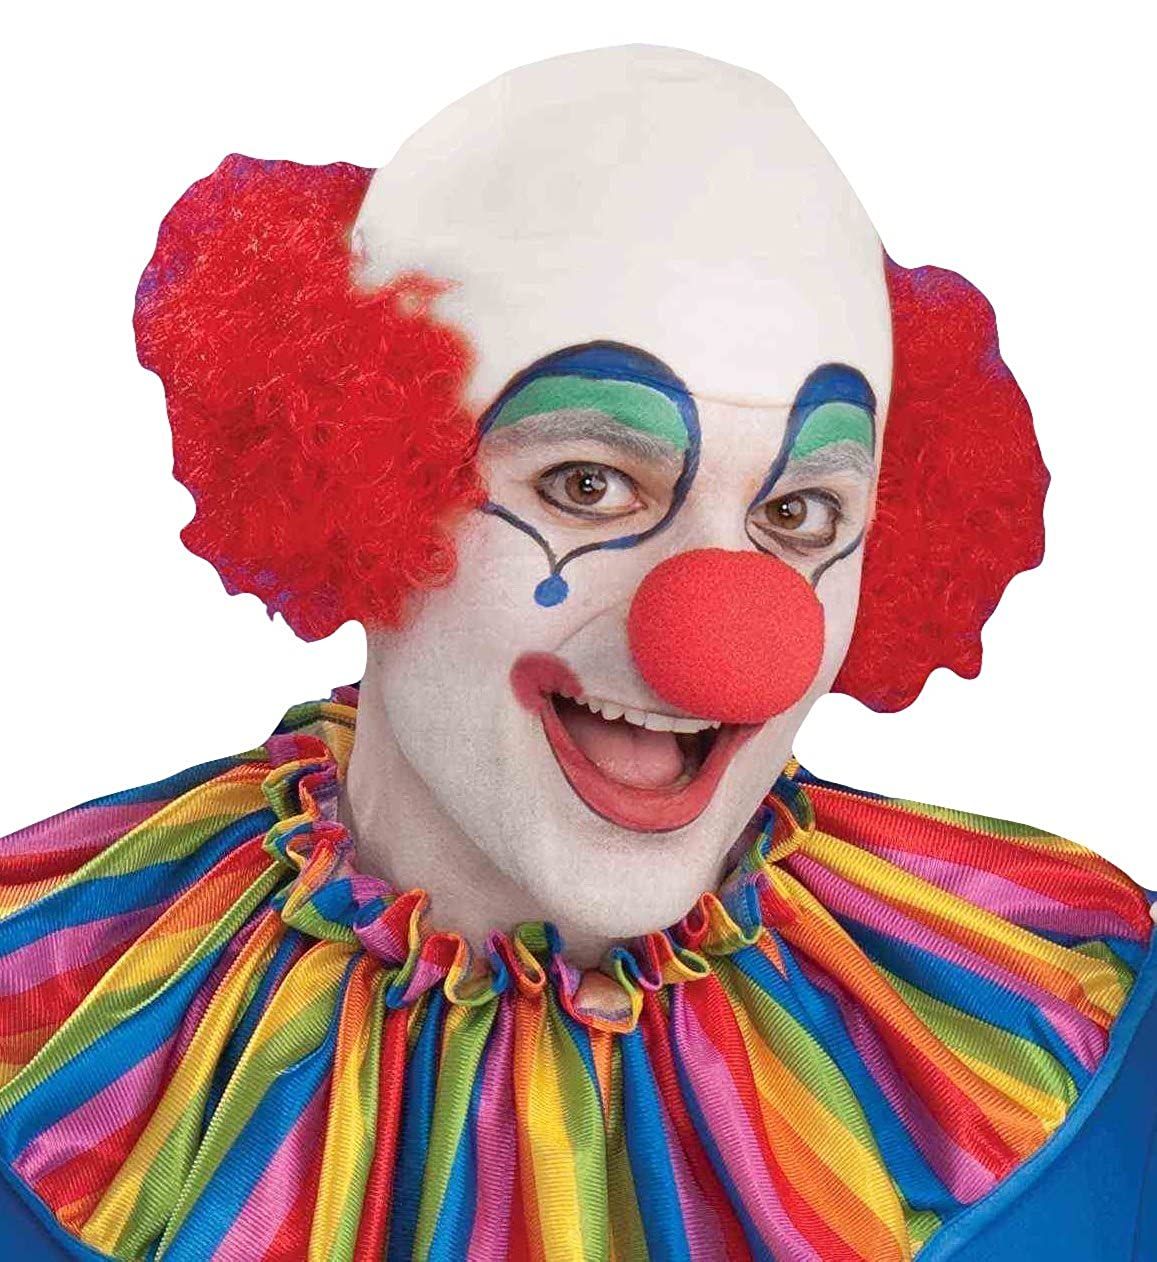 Forum Womens Baldy The Clown Wig Multi One Size Forum Novelties Costumes 64403